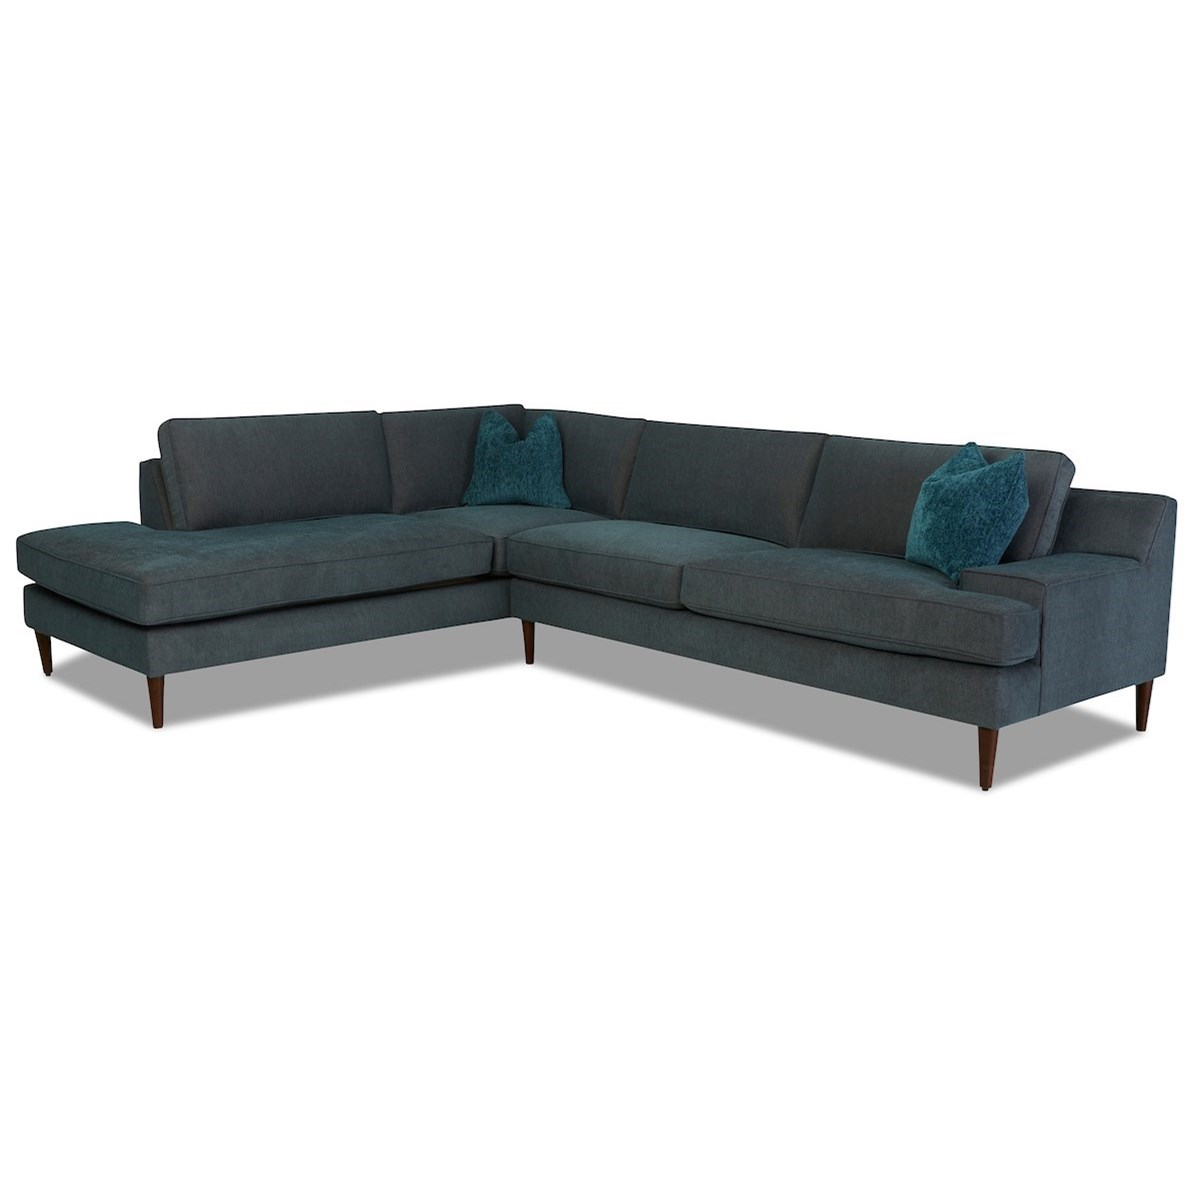 Talon 3-Seat Chaise Sectional w/ LAF Sofa Chaise